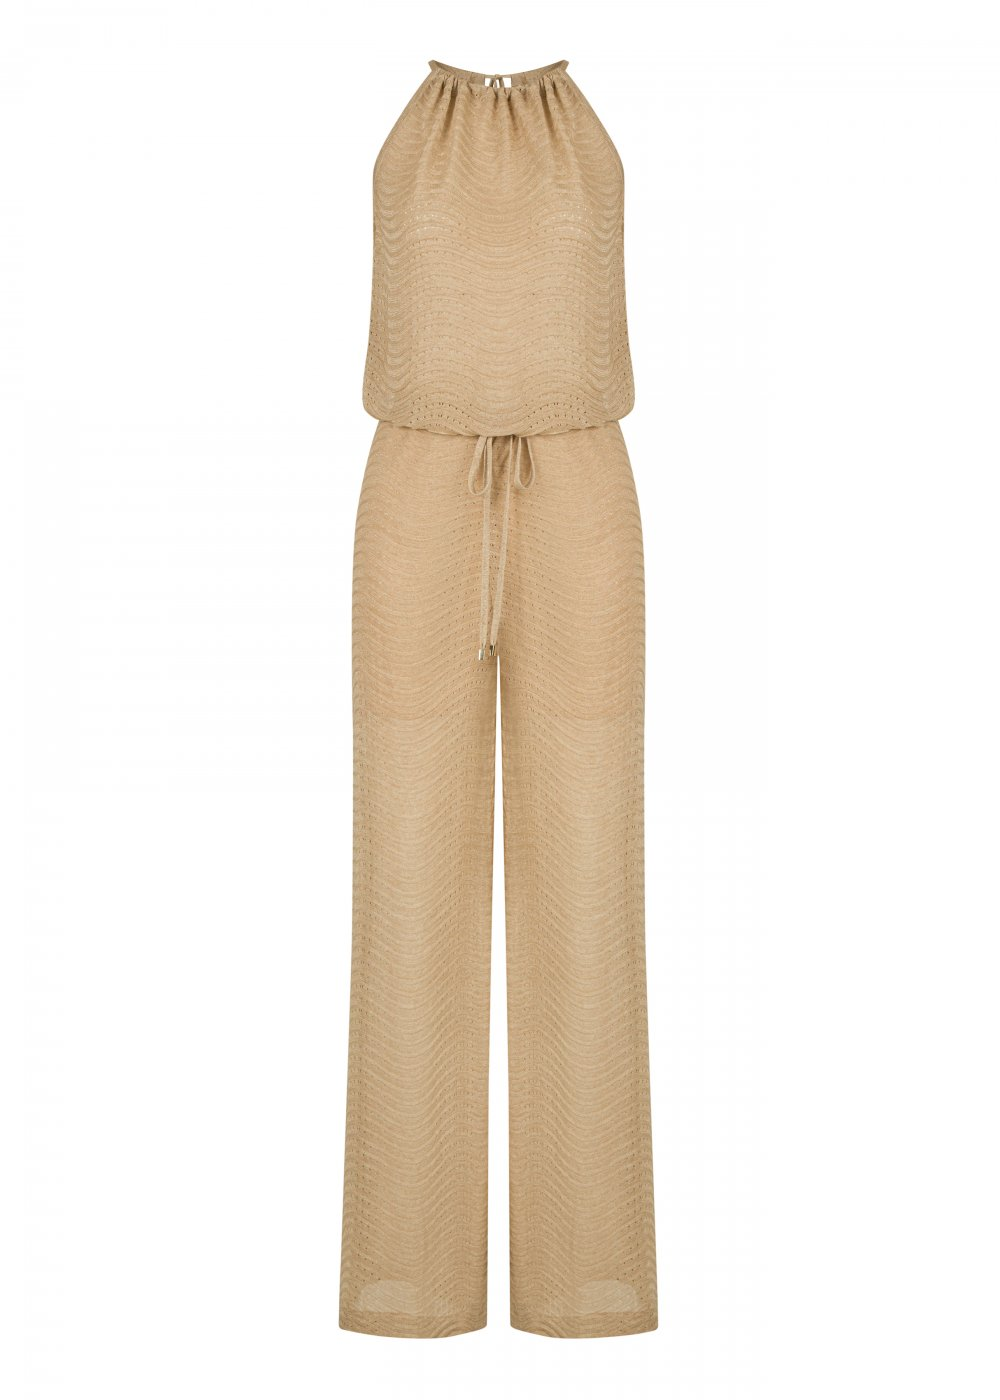 Tie Neck Beige Knit Jumpsuit